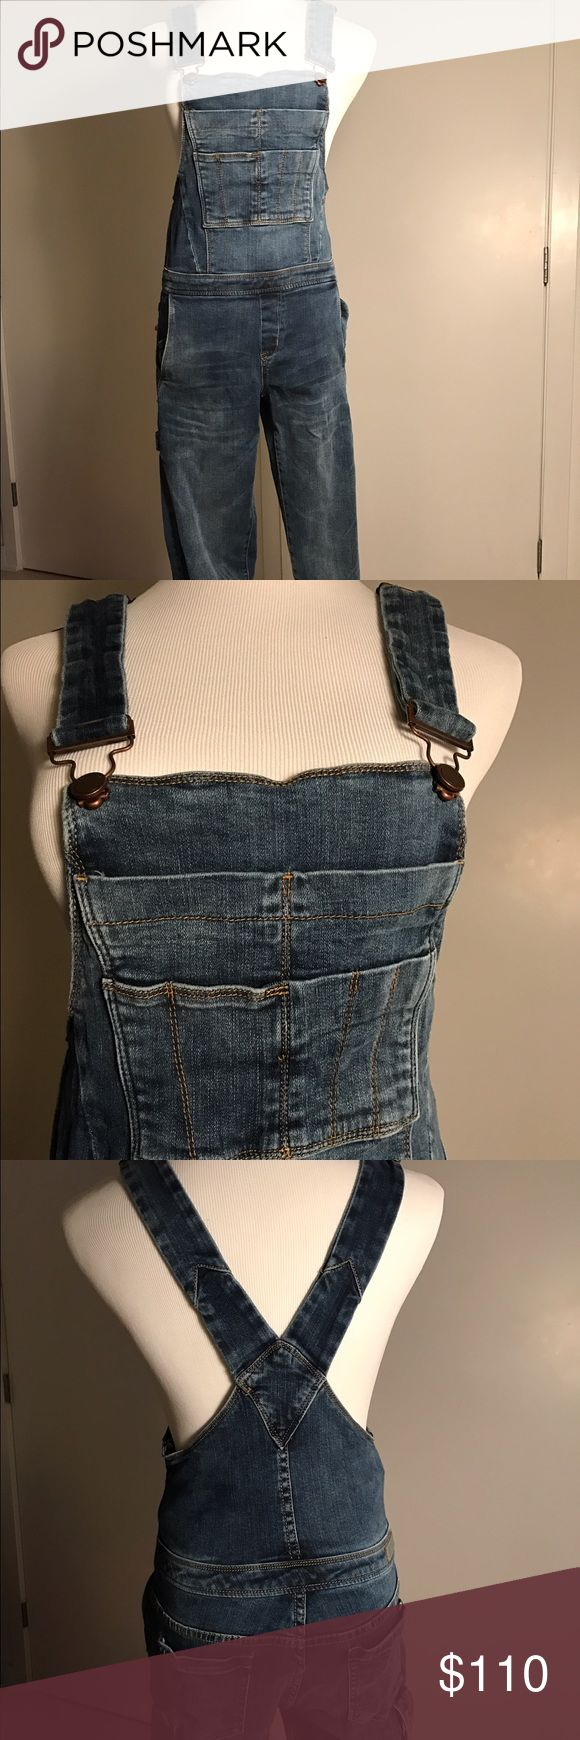 Blank NYC Denim Overalls Dark wash jean overalls by Blank NYC. Purchased from Dash. Has a side zipper closure. Fabric is a soft denim. Worn once. Blank NYC Jeans Overalls